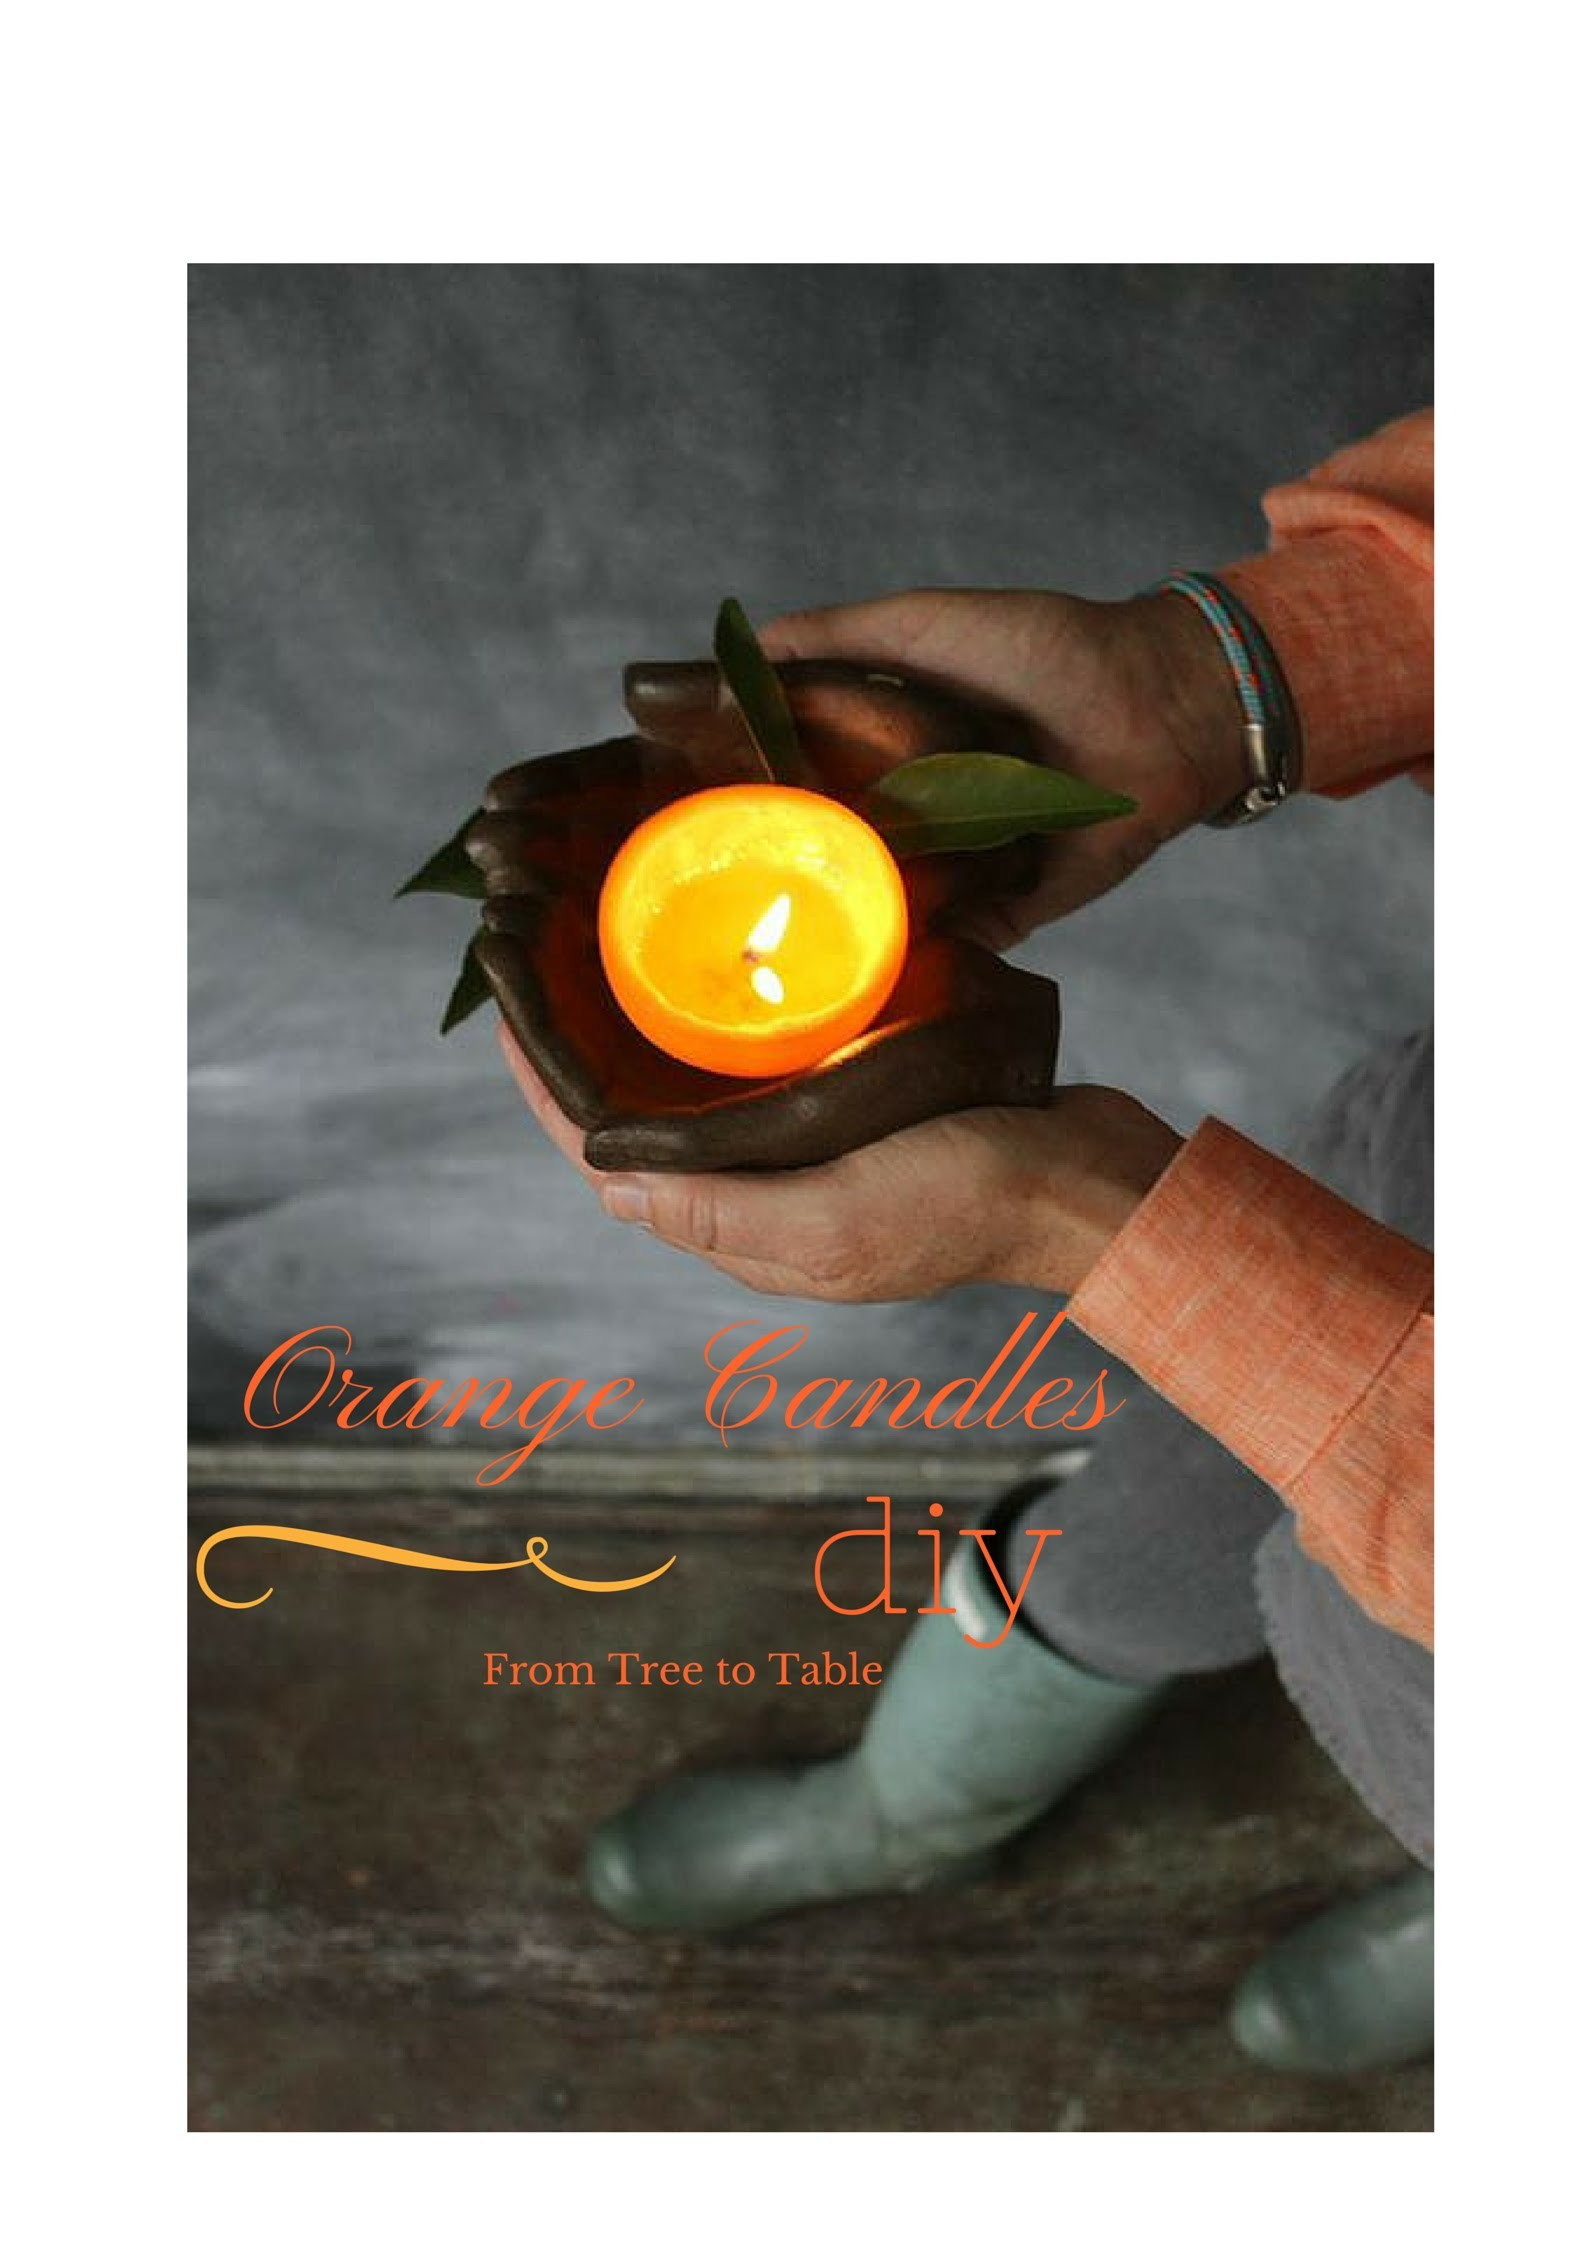 DIY: How to Make a Candle From an Orange